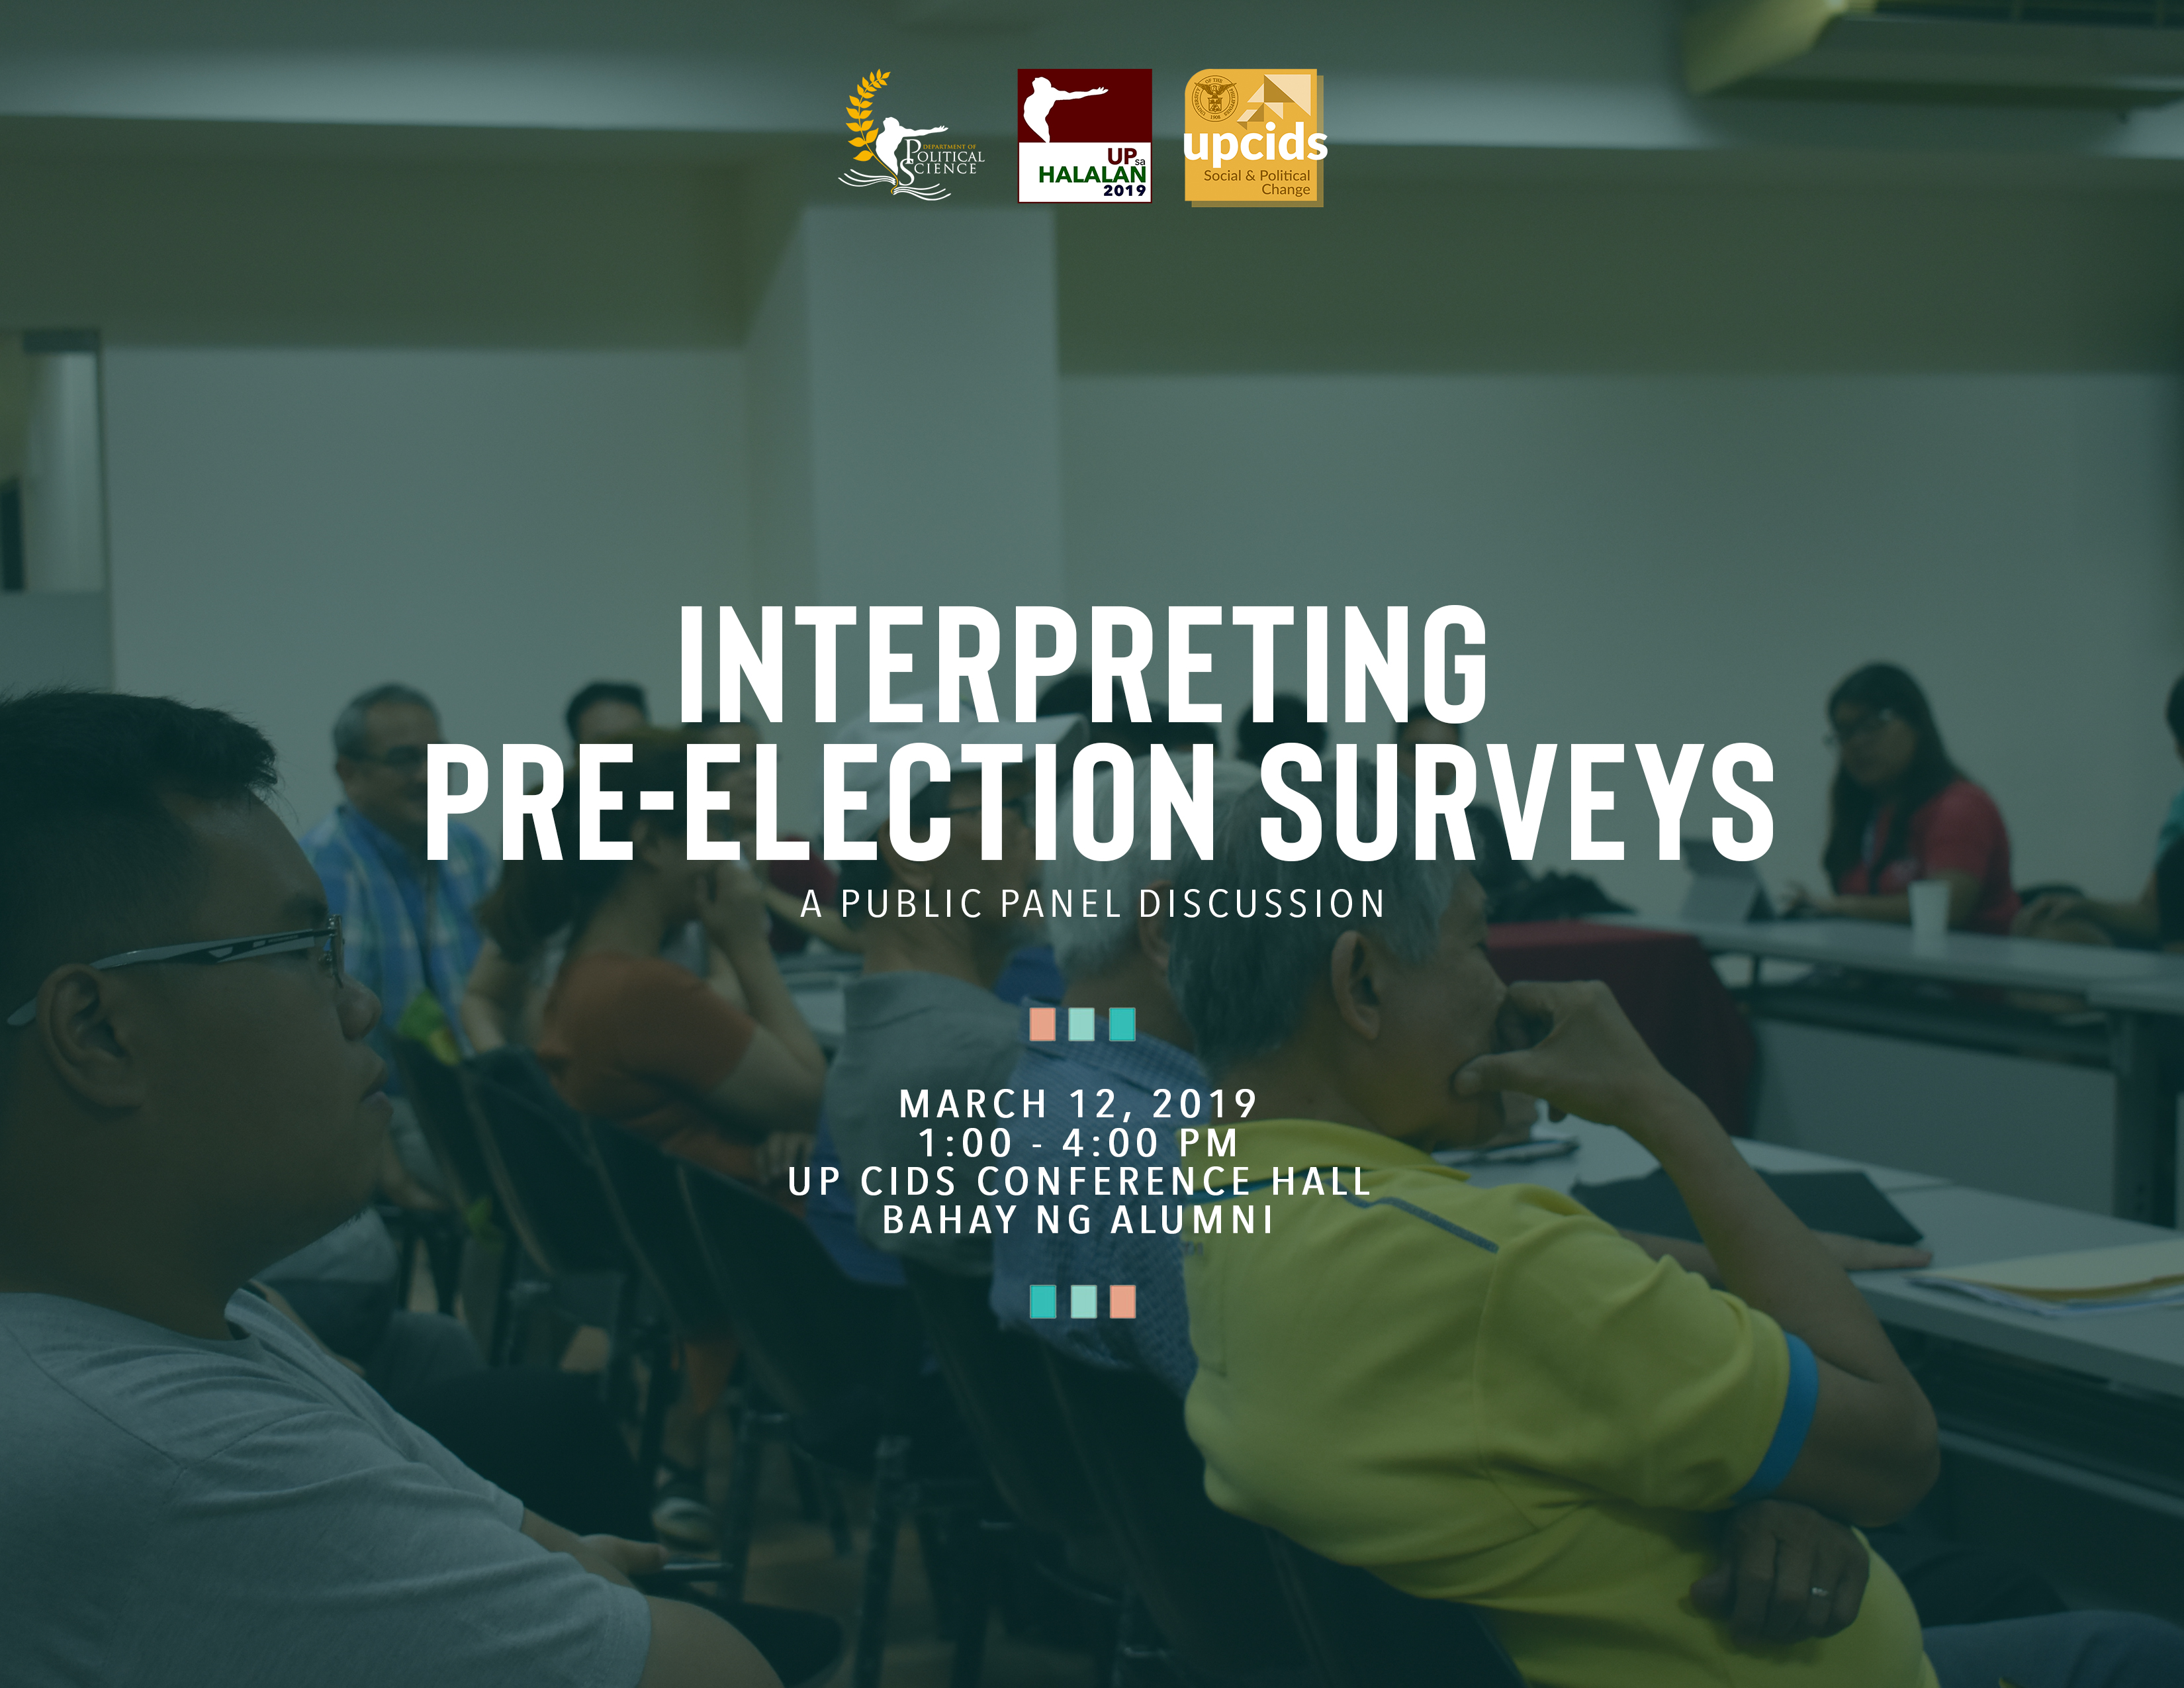 Interpreting Pre-Election Surveys: A Public Panel Discussion